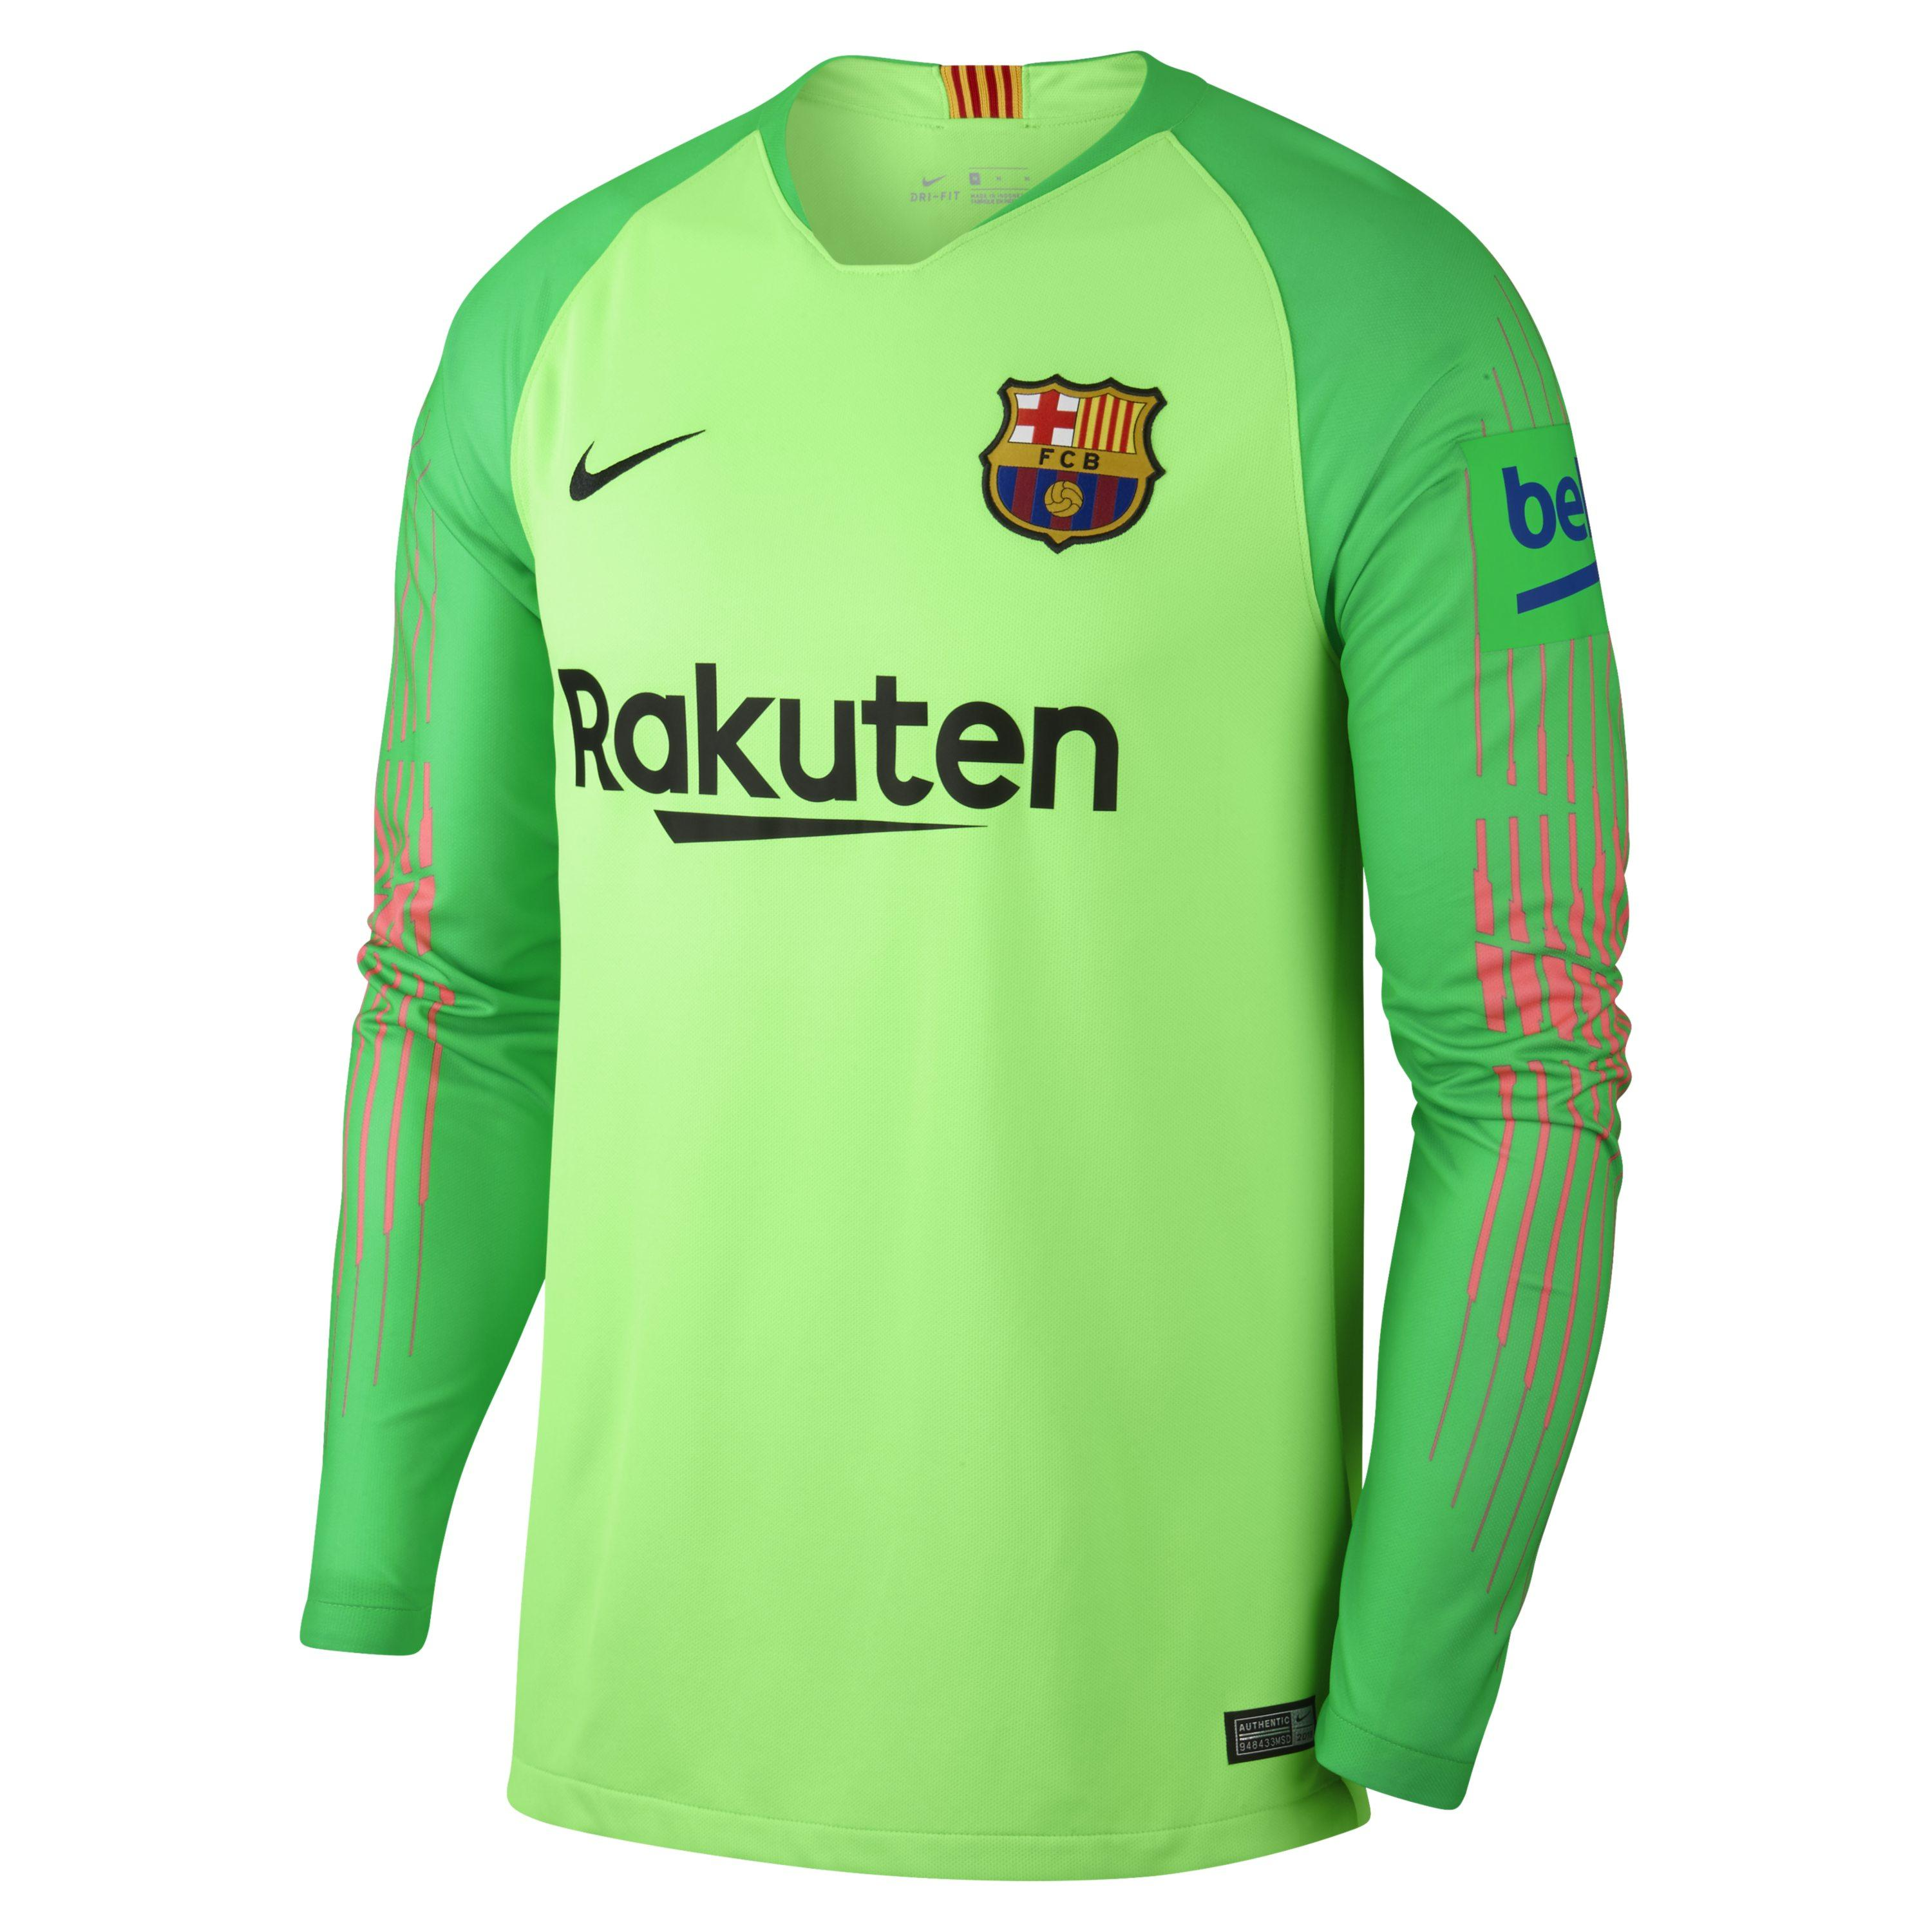 quality design 133b9 dda6f Men's Green 2018/19 Fc Barcelona Stadium Goalkeeper Football Shirt